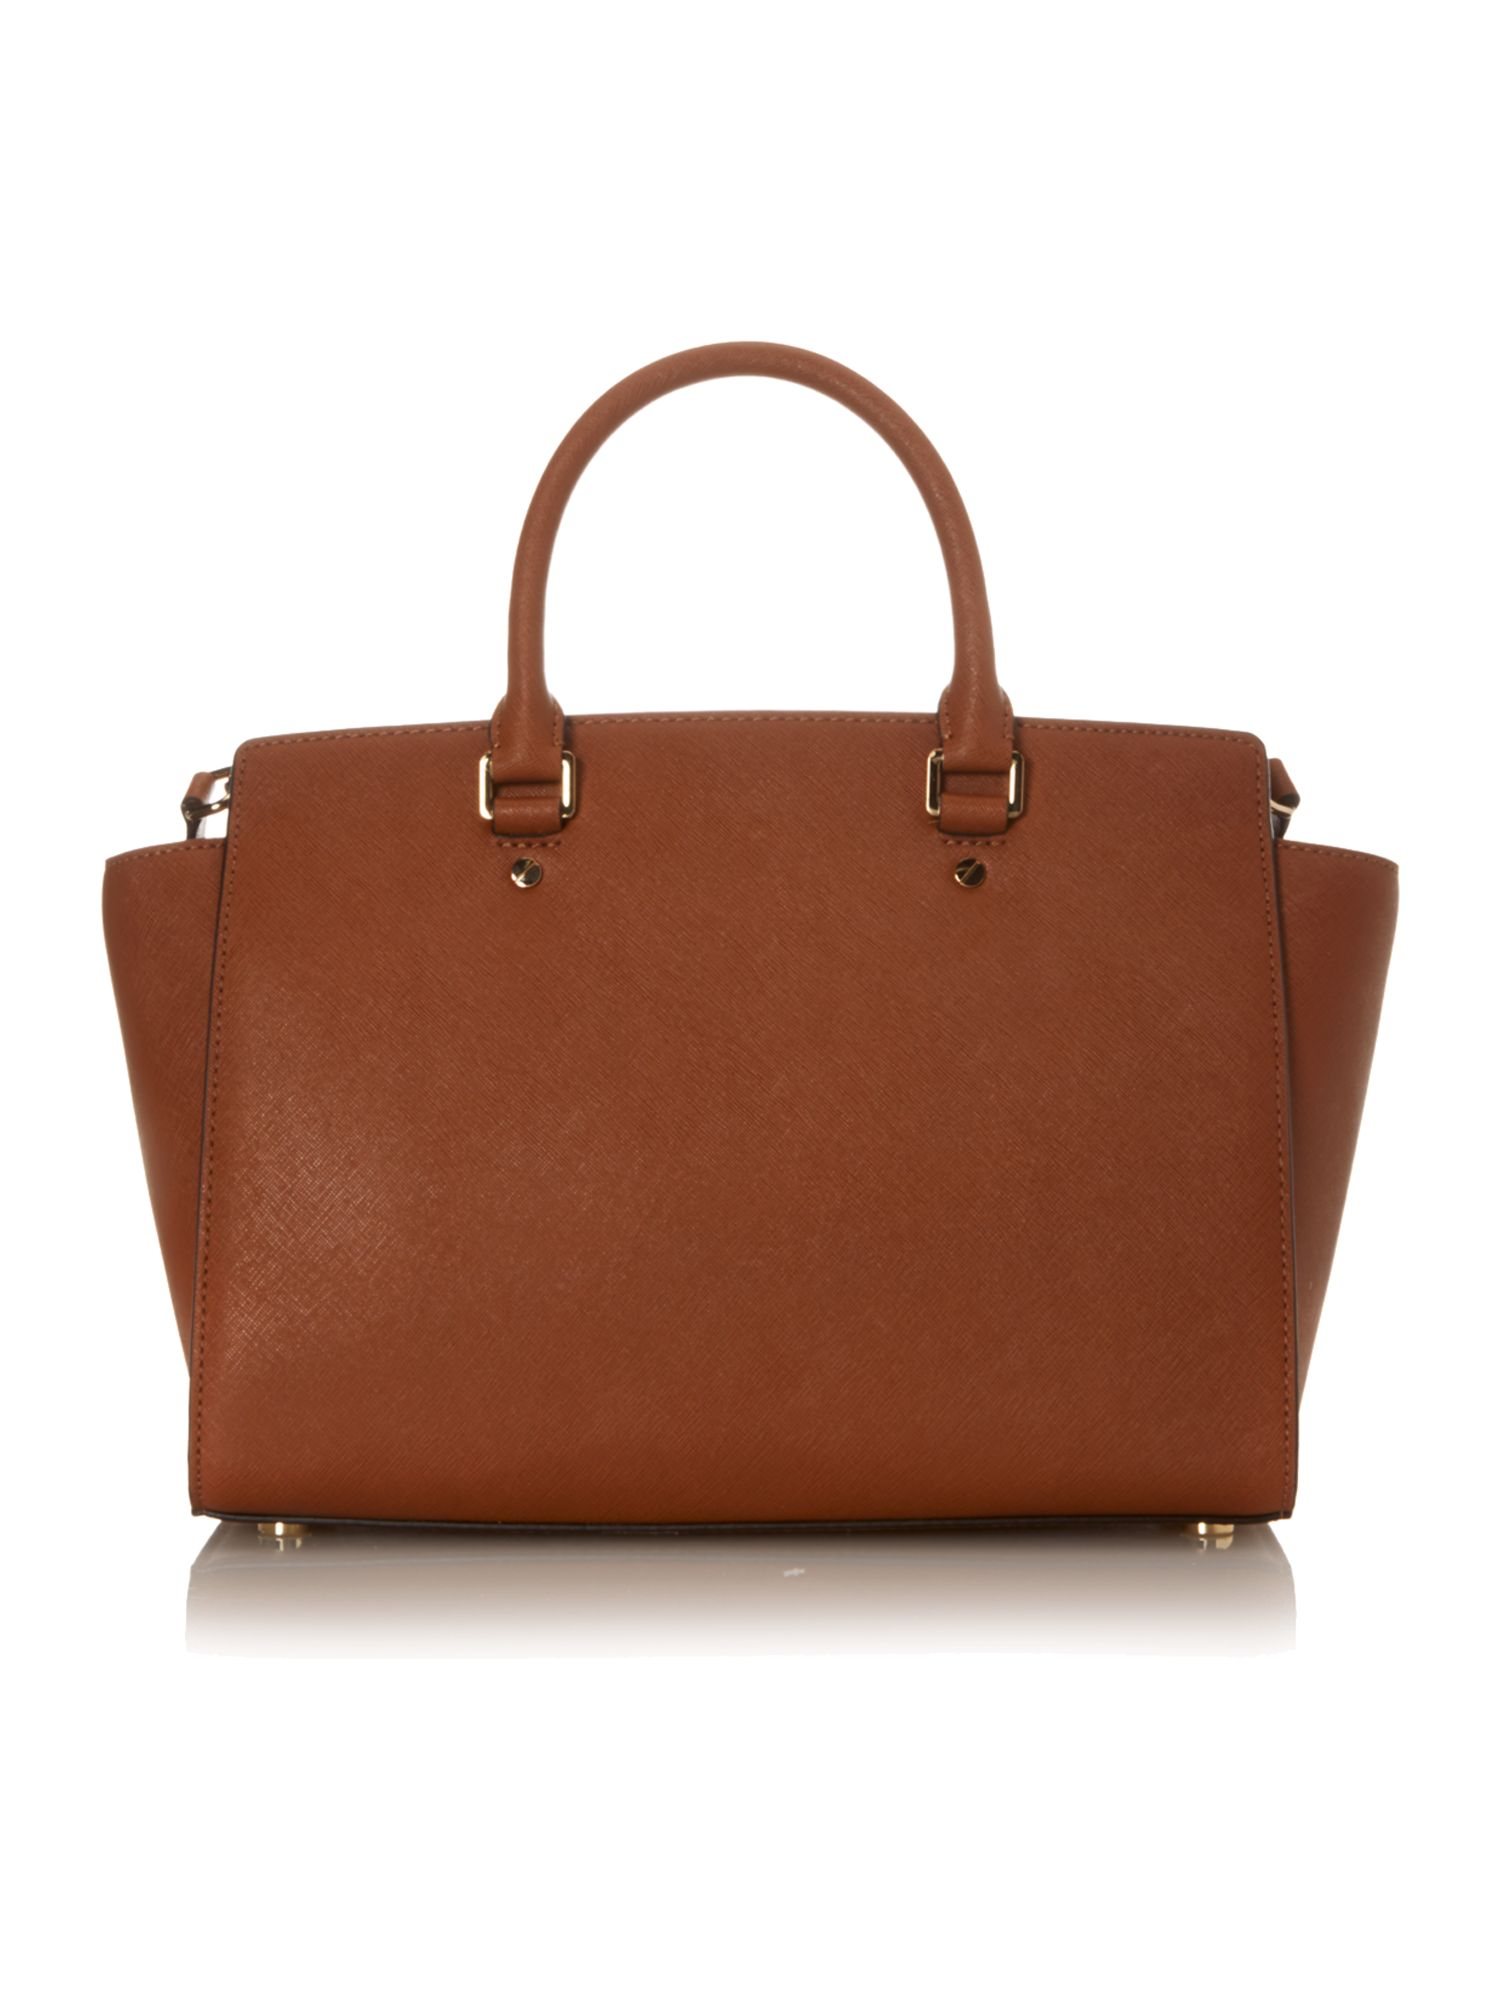 Michael Kors Selma tote - House of Fraser